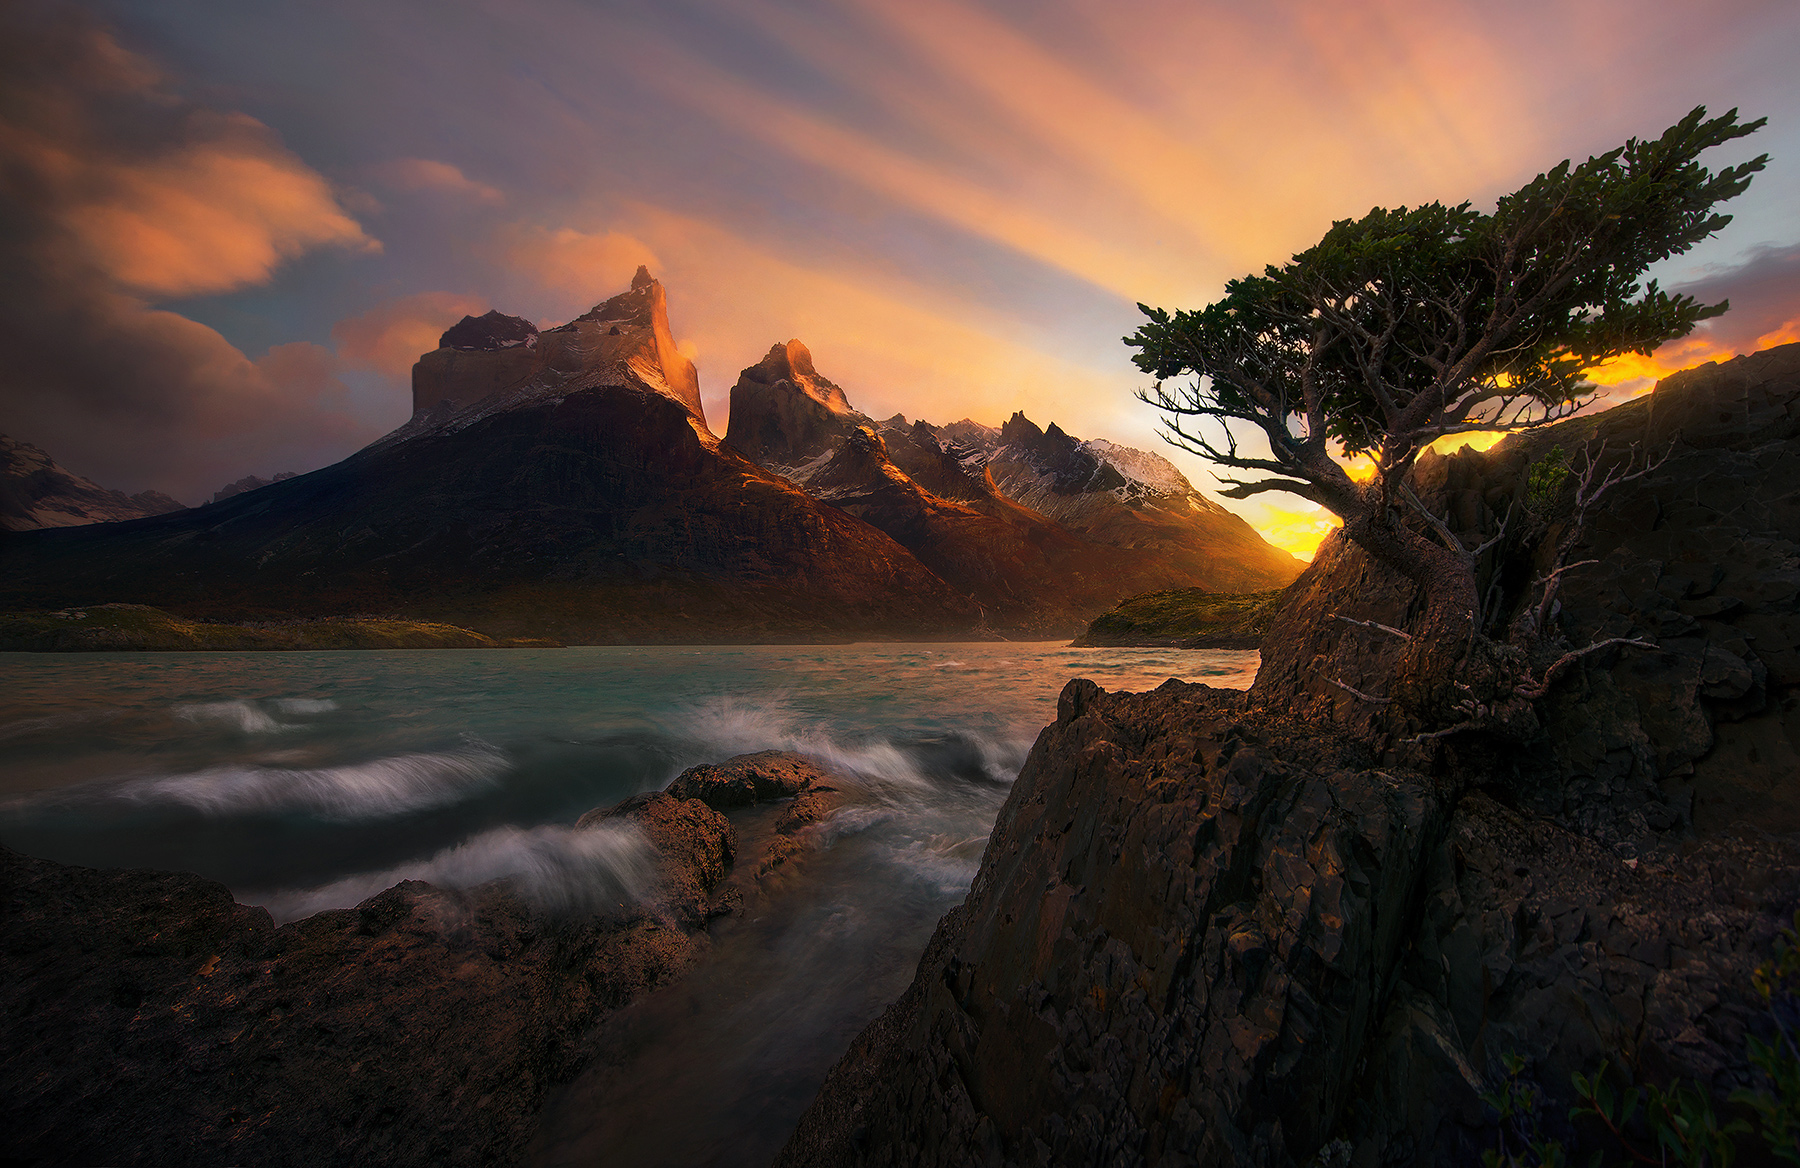 An old friend, this Coigue tree, perched on it's little ledge above one of the windiest lakes on Earth. Just surviving...